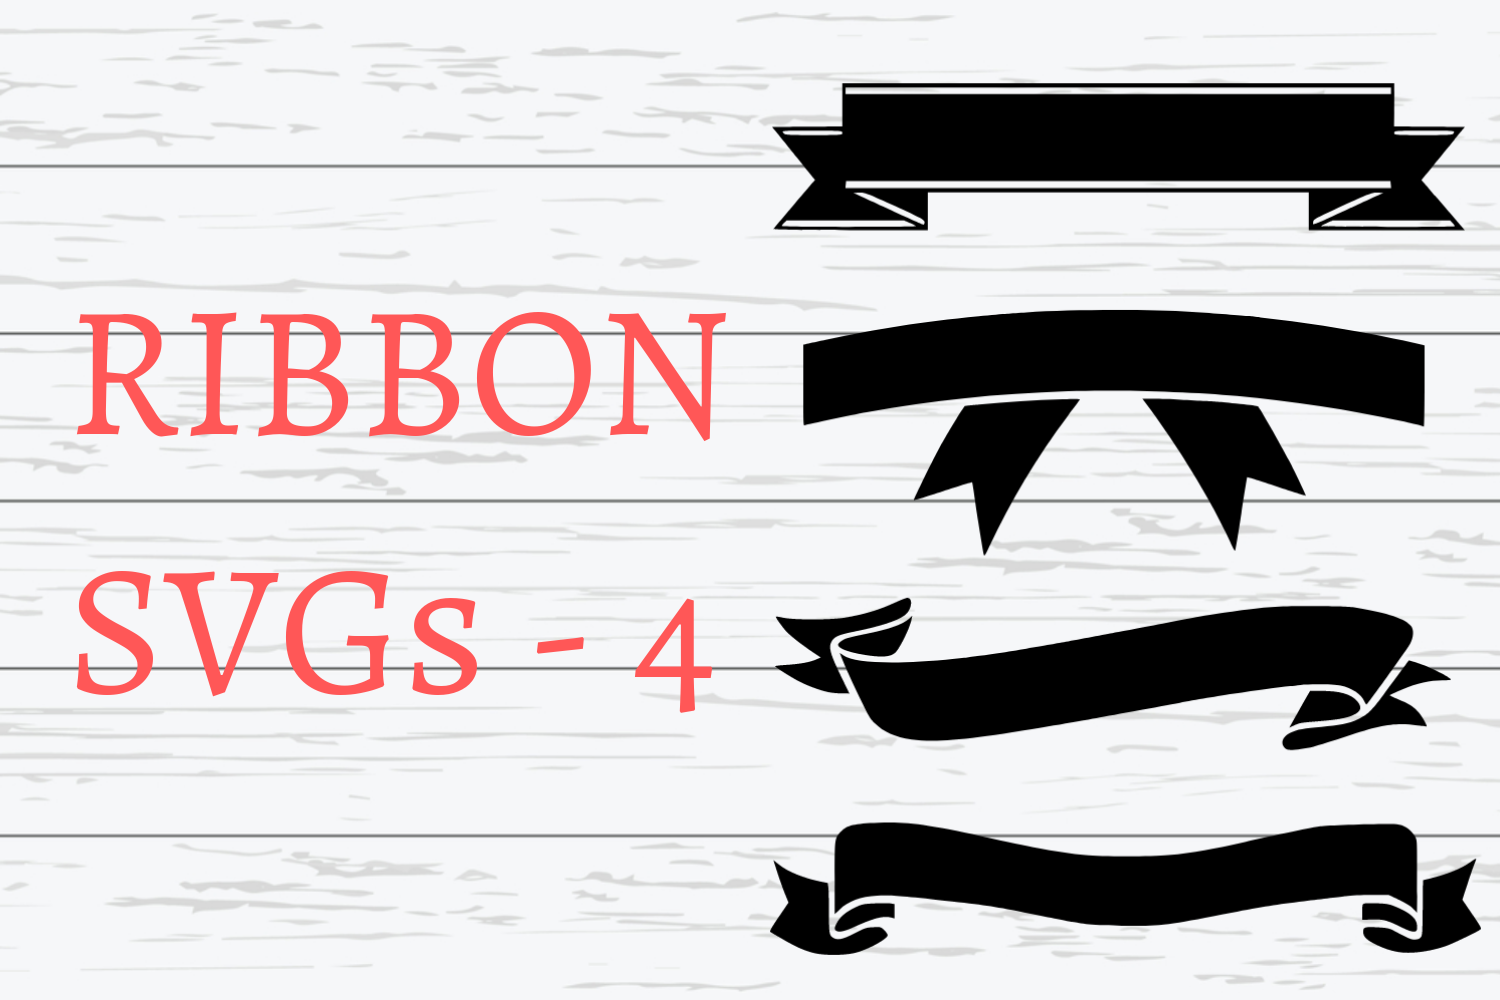 Ribbon Svgs 4 Different Ribbon Svgs By Mockupvenue Thehungryjpeg Com